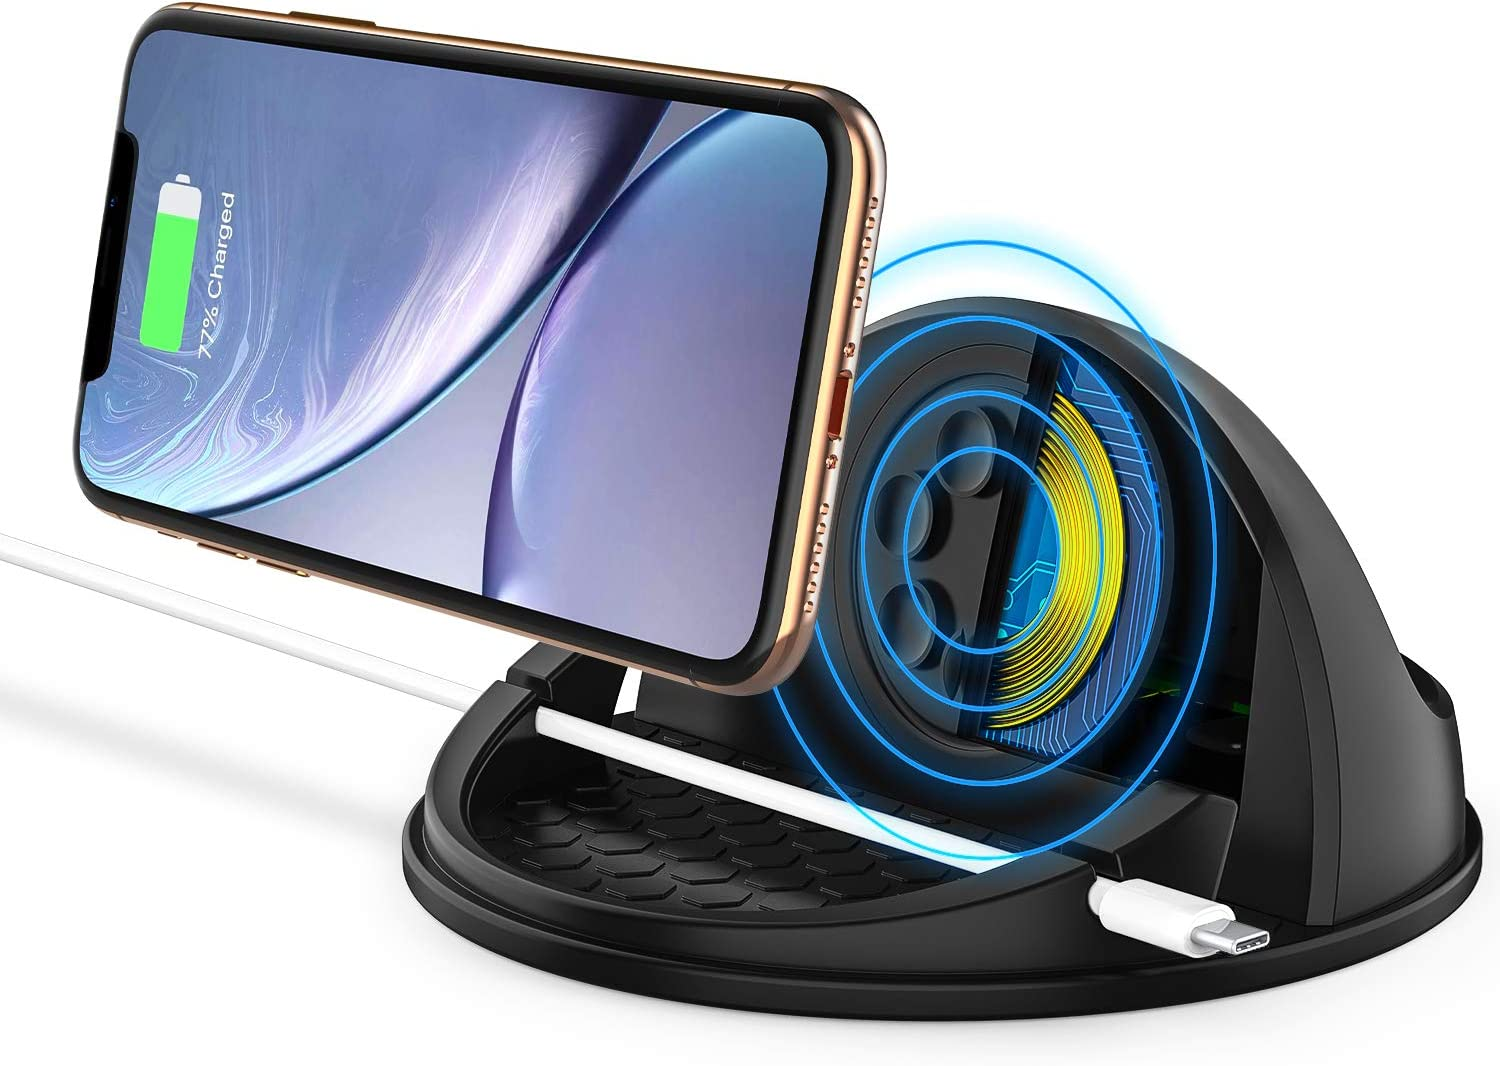 Wireless Car Charger Mount,Qi-Certified Car Wireless Charging Stand Compatible with iPhone 11 pro/X/XS Max/XR/8/Samsung Galaxy S9 / S10/,Silicone Car Phone Holder Dashboard Desk